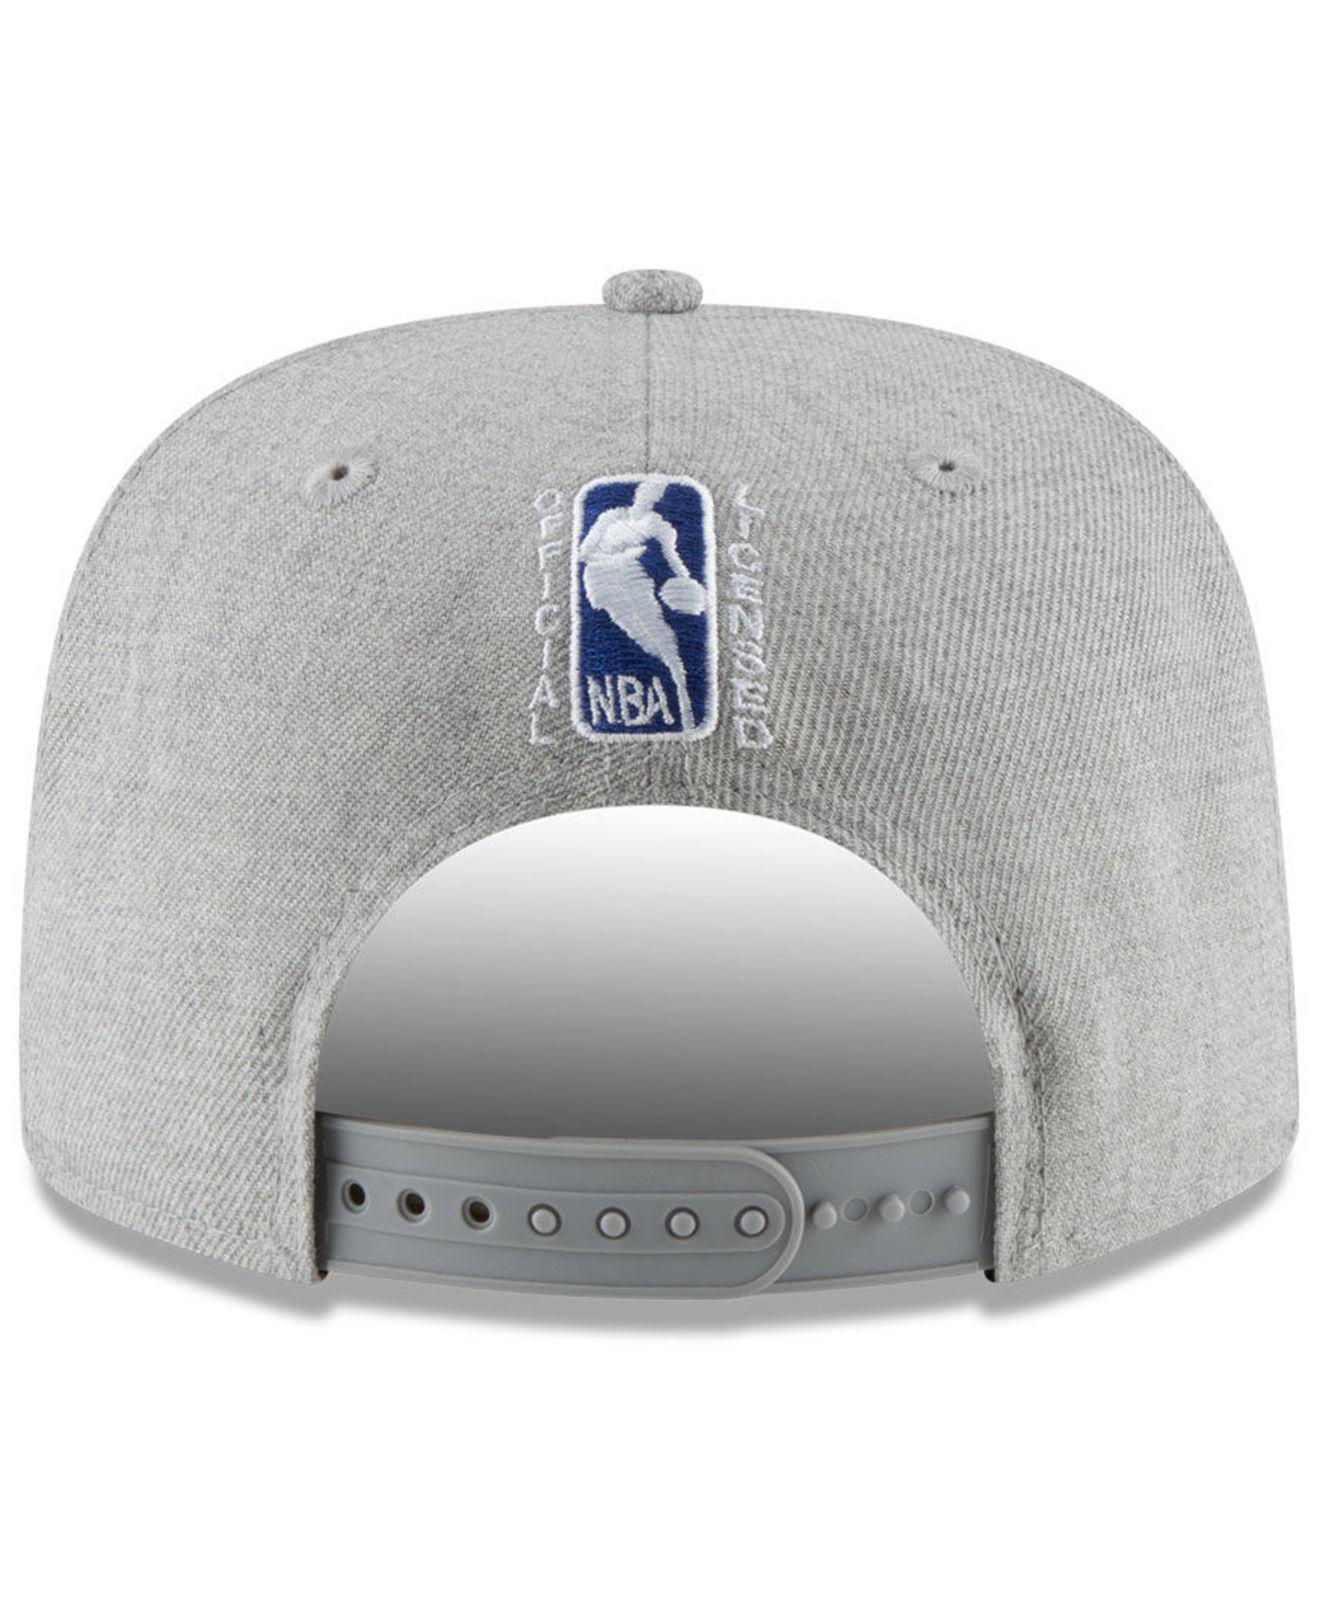 factory authentic 8f28c 00f3a ... germany los angeles clippers logo trace 9fifty snapback cap for men lyst.  view fullscreen 4e3ca